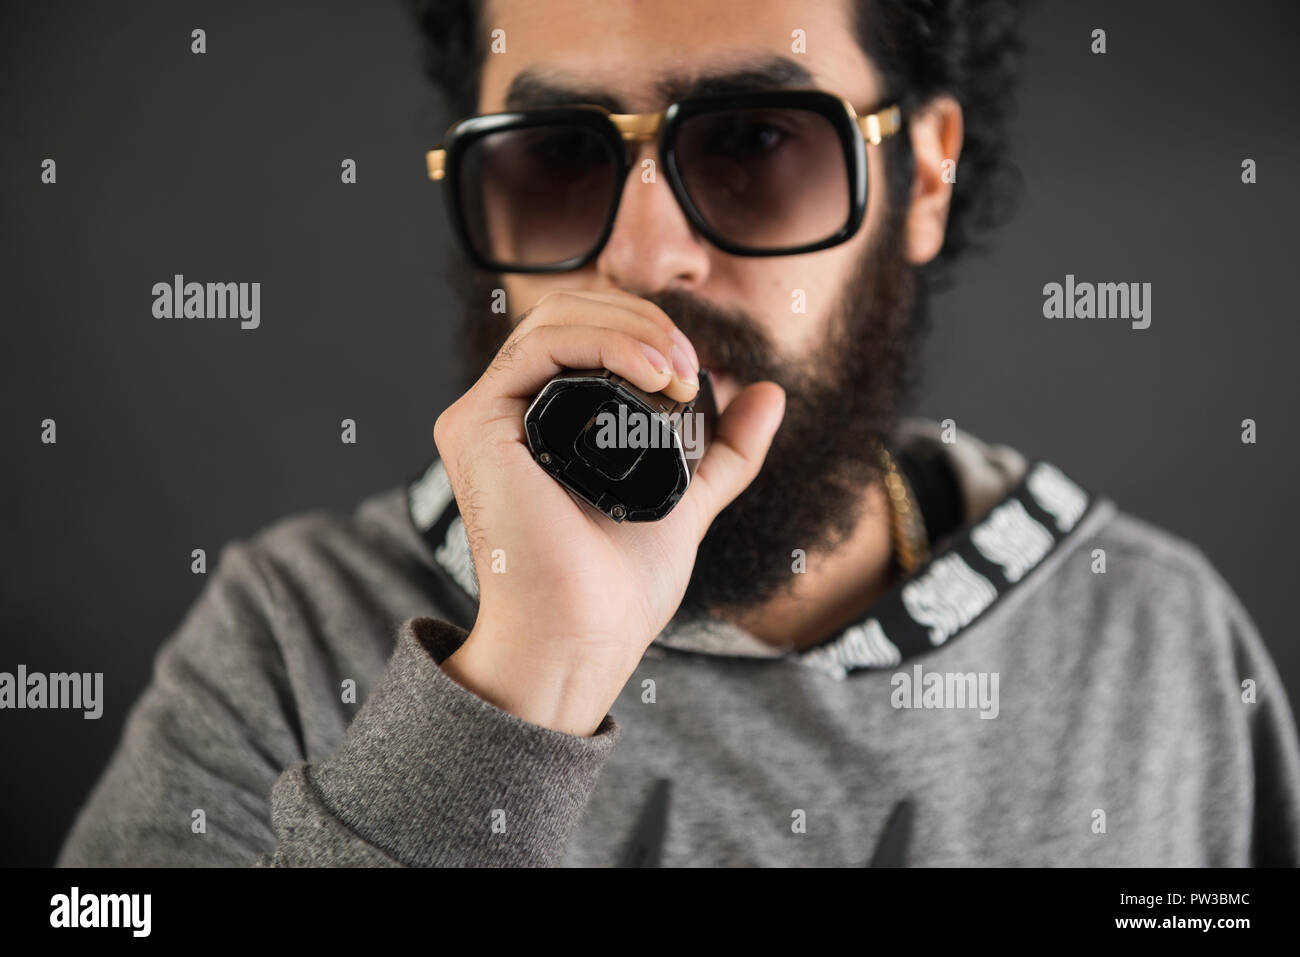 Portrait of a young guy with big beard and sunglasses and vaping an electronic cigarette on a black background. Stock Photo